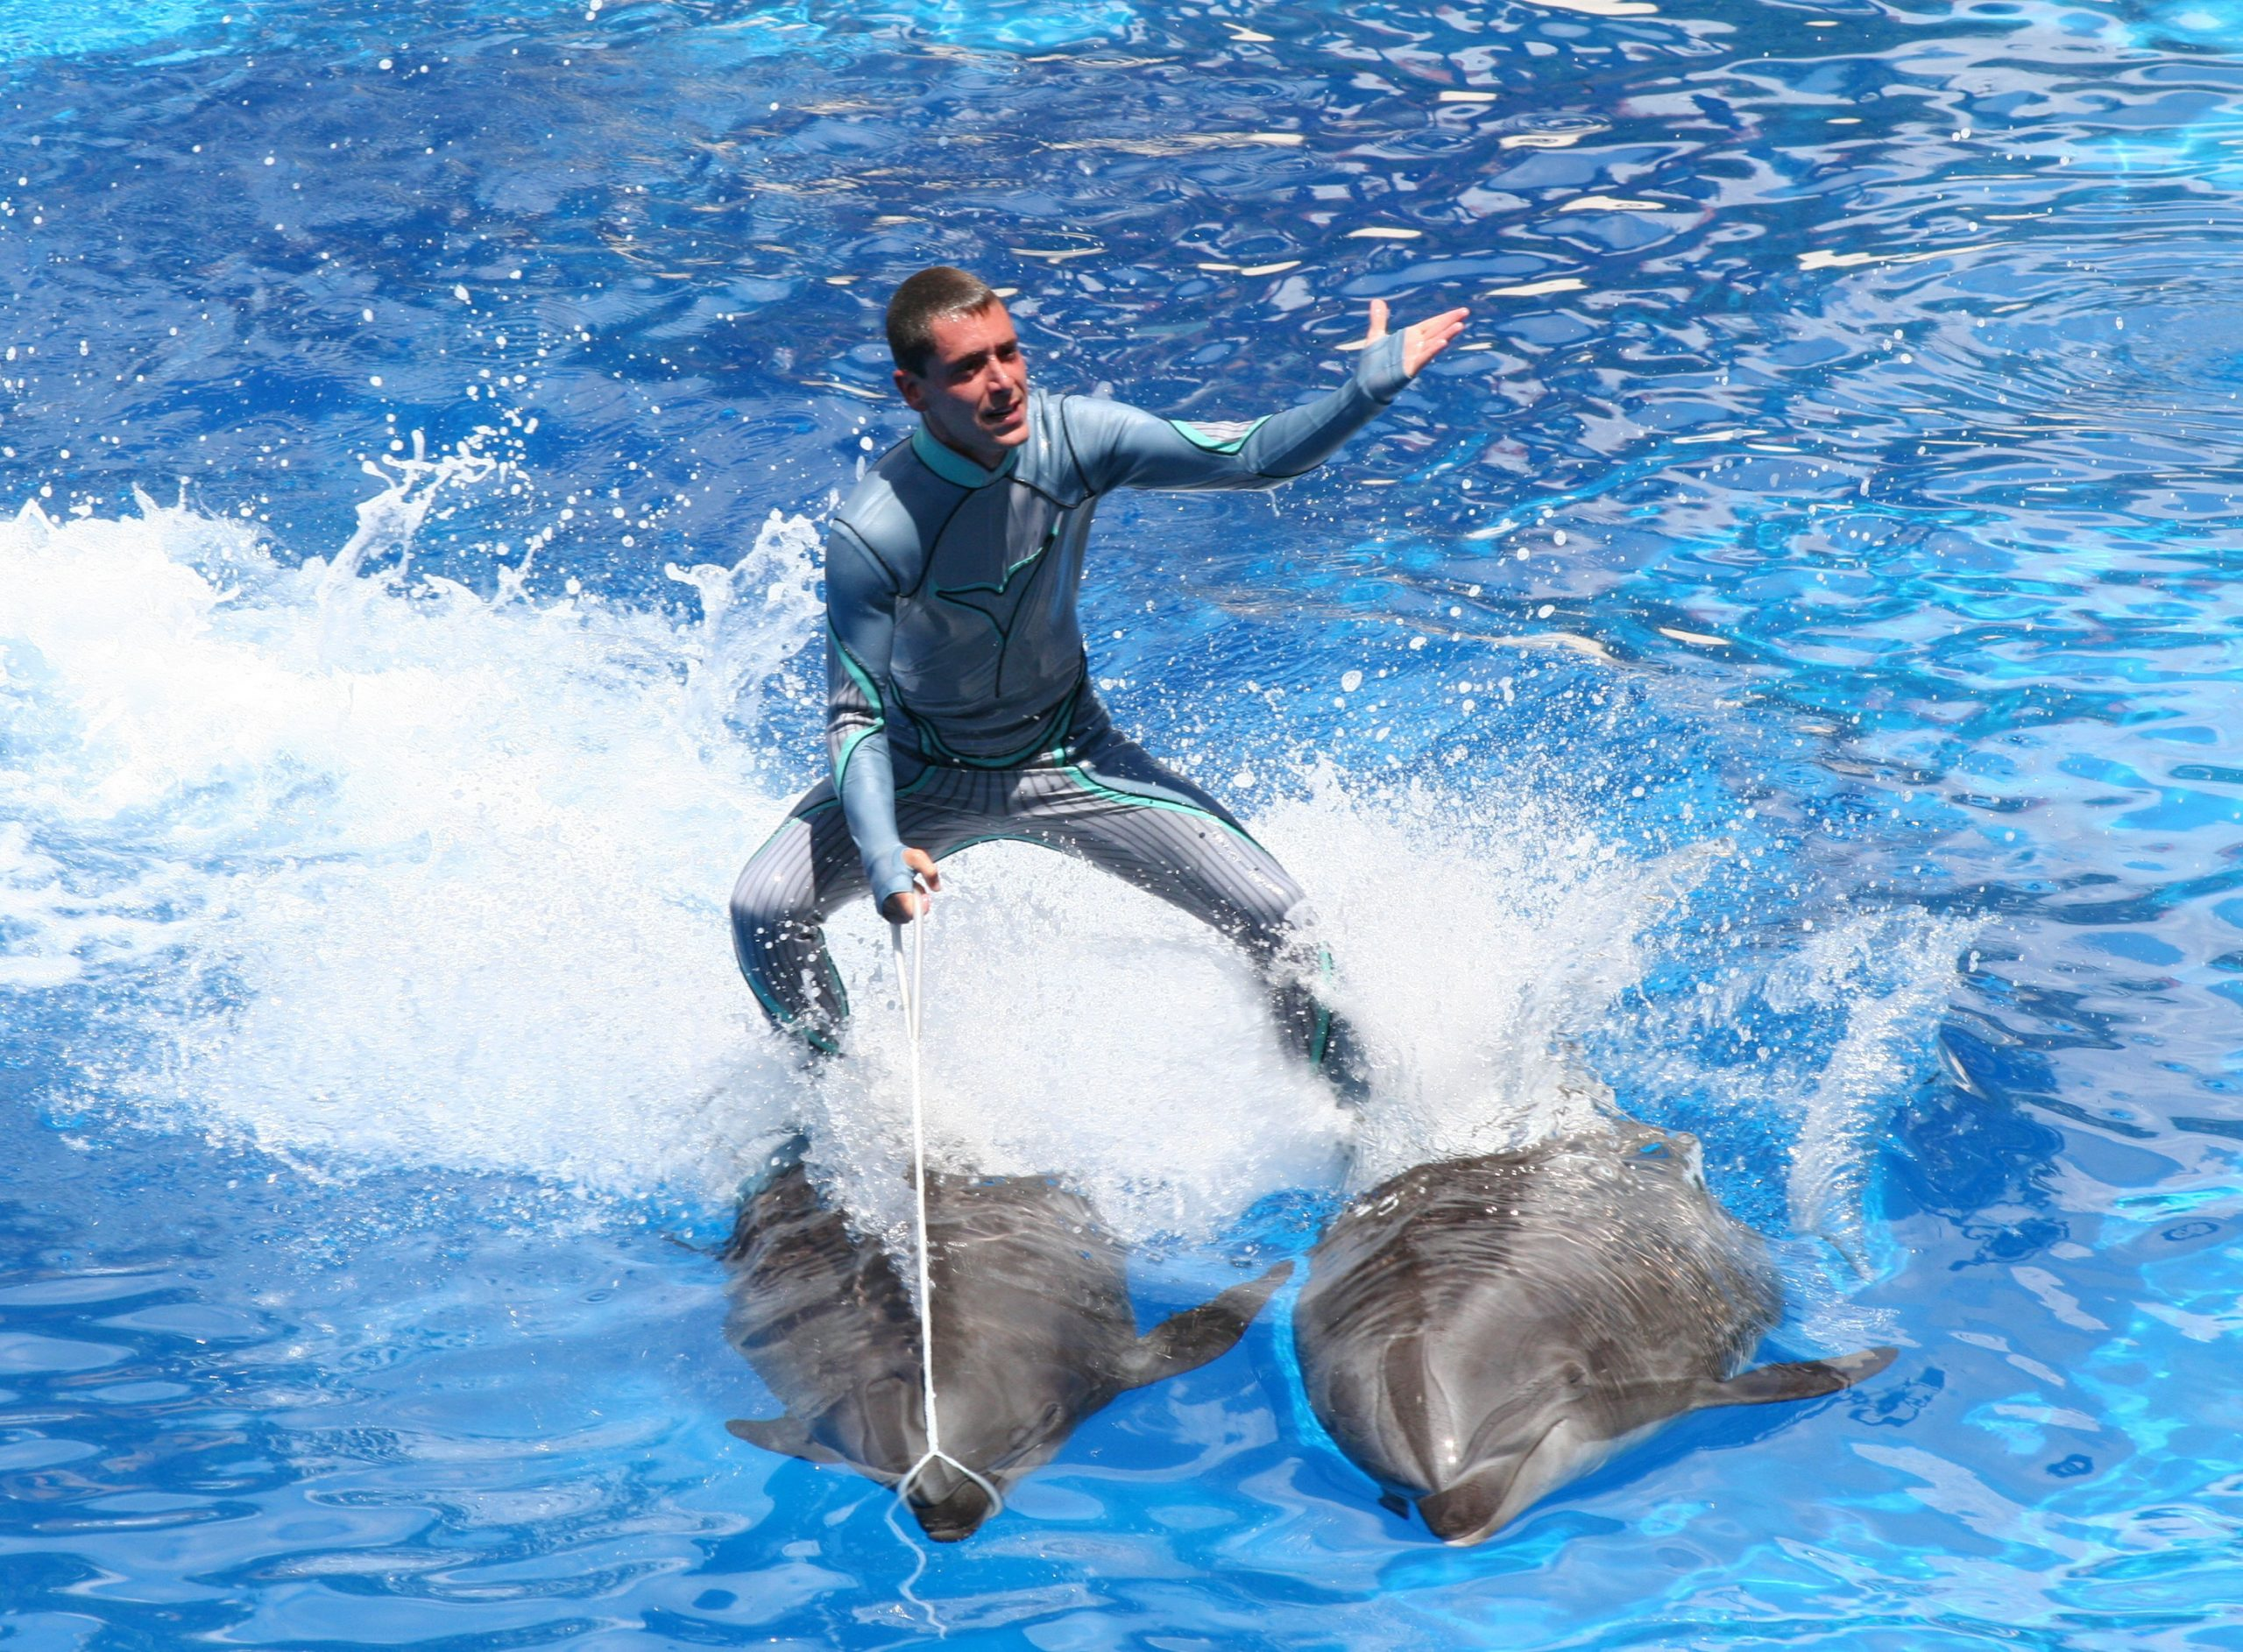 SeaWorld Ends Practice of Trainers Riding Dolphins